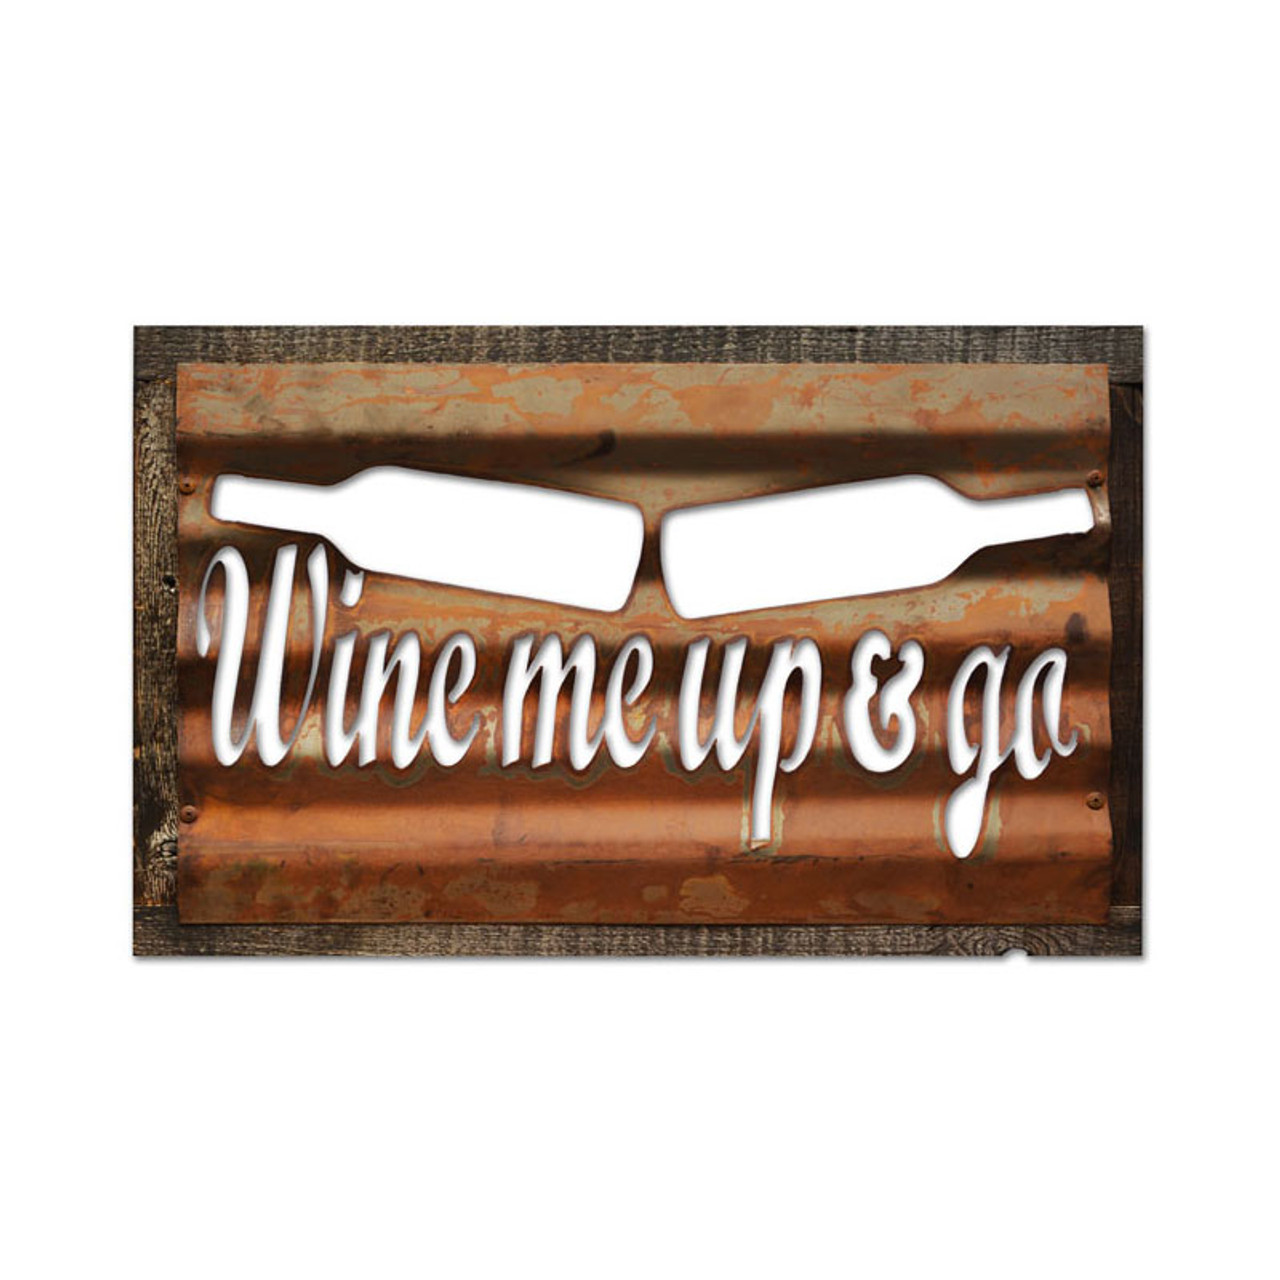 Vintage Wine Me Corrugated Rustic Barn Wood Sign 19 x 26 Inches